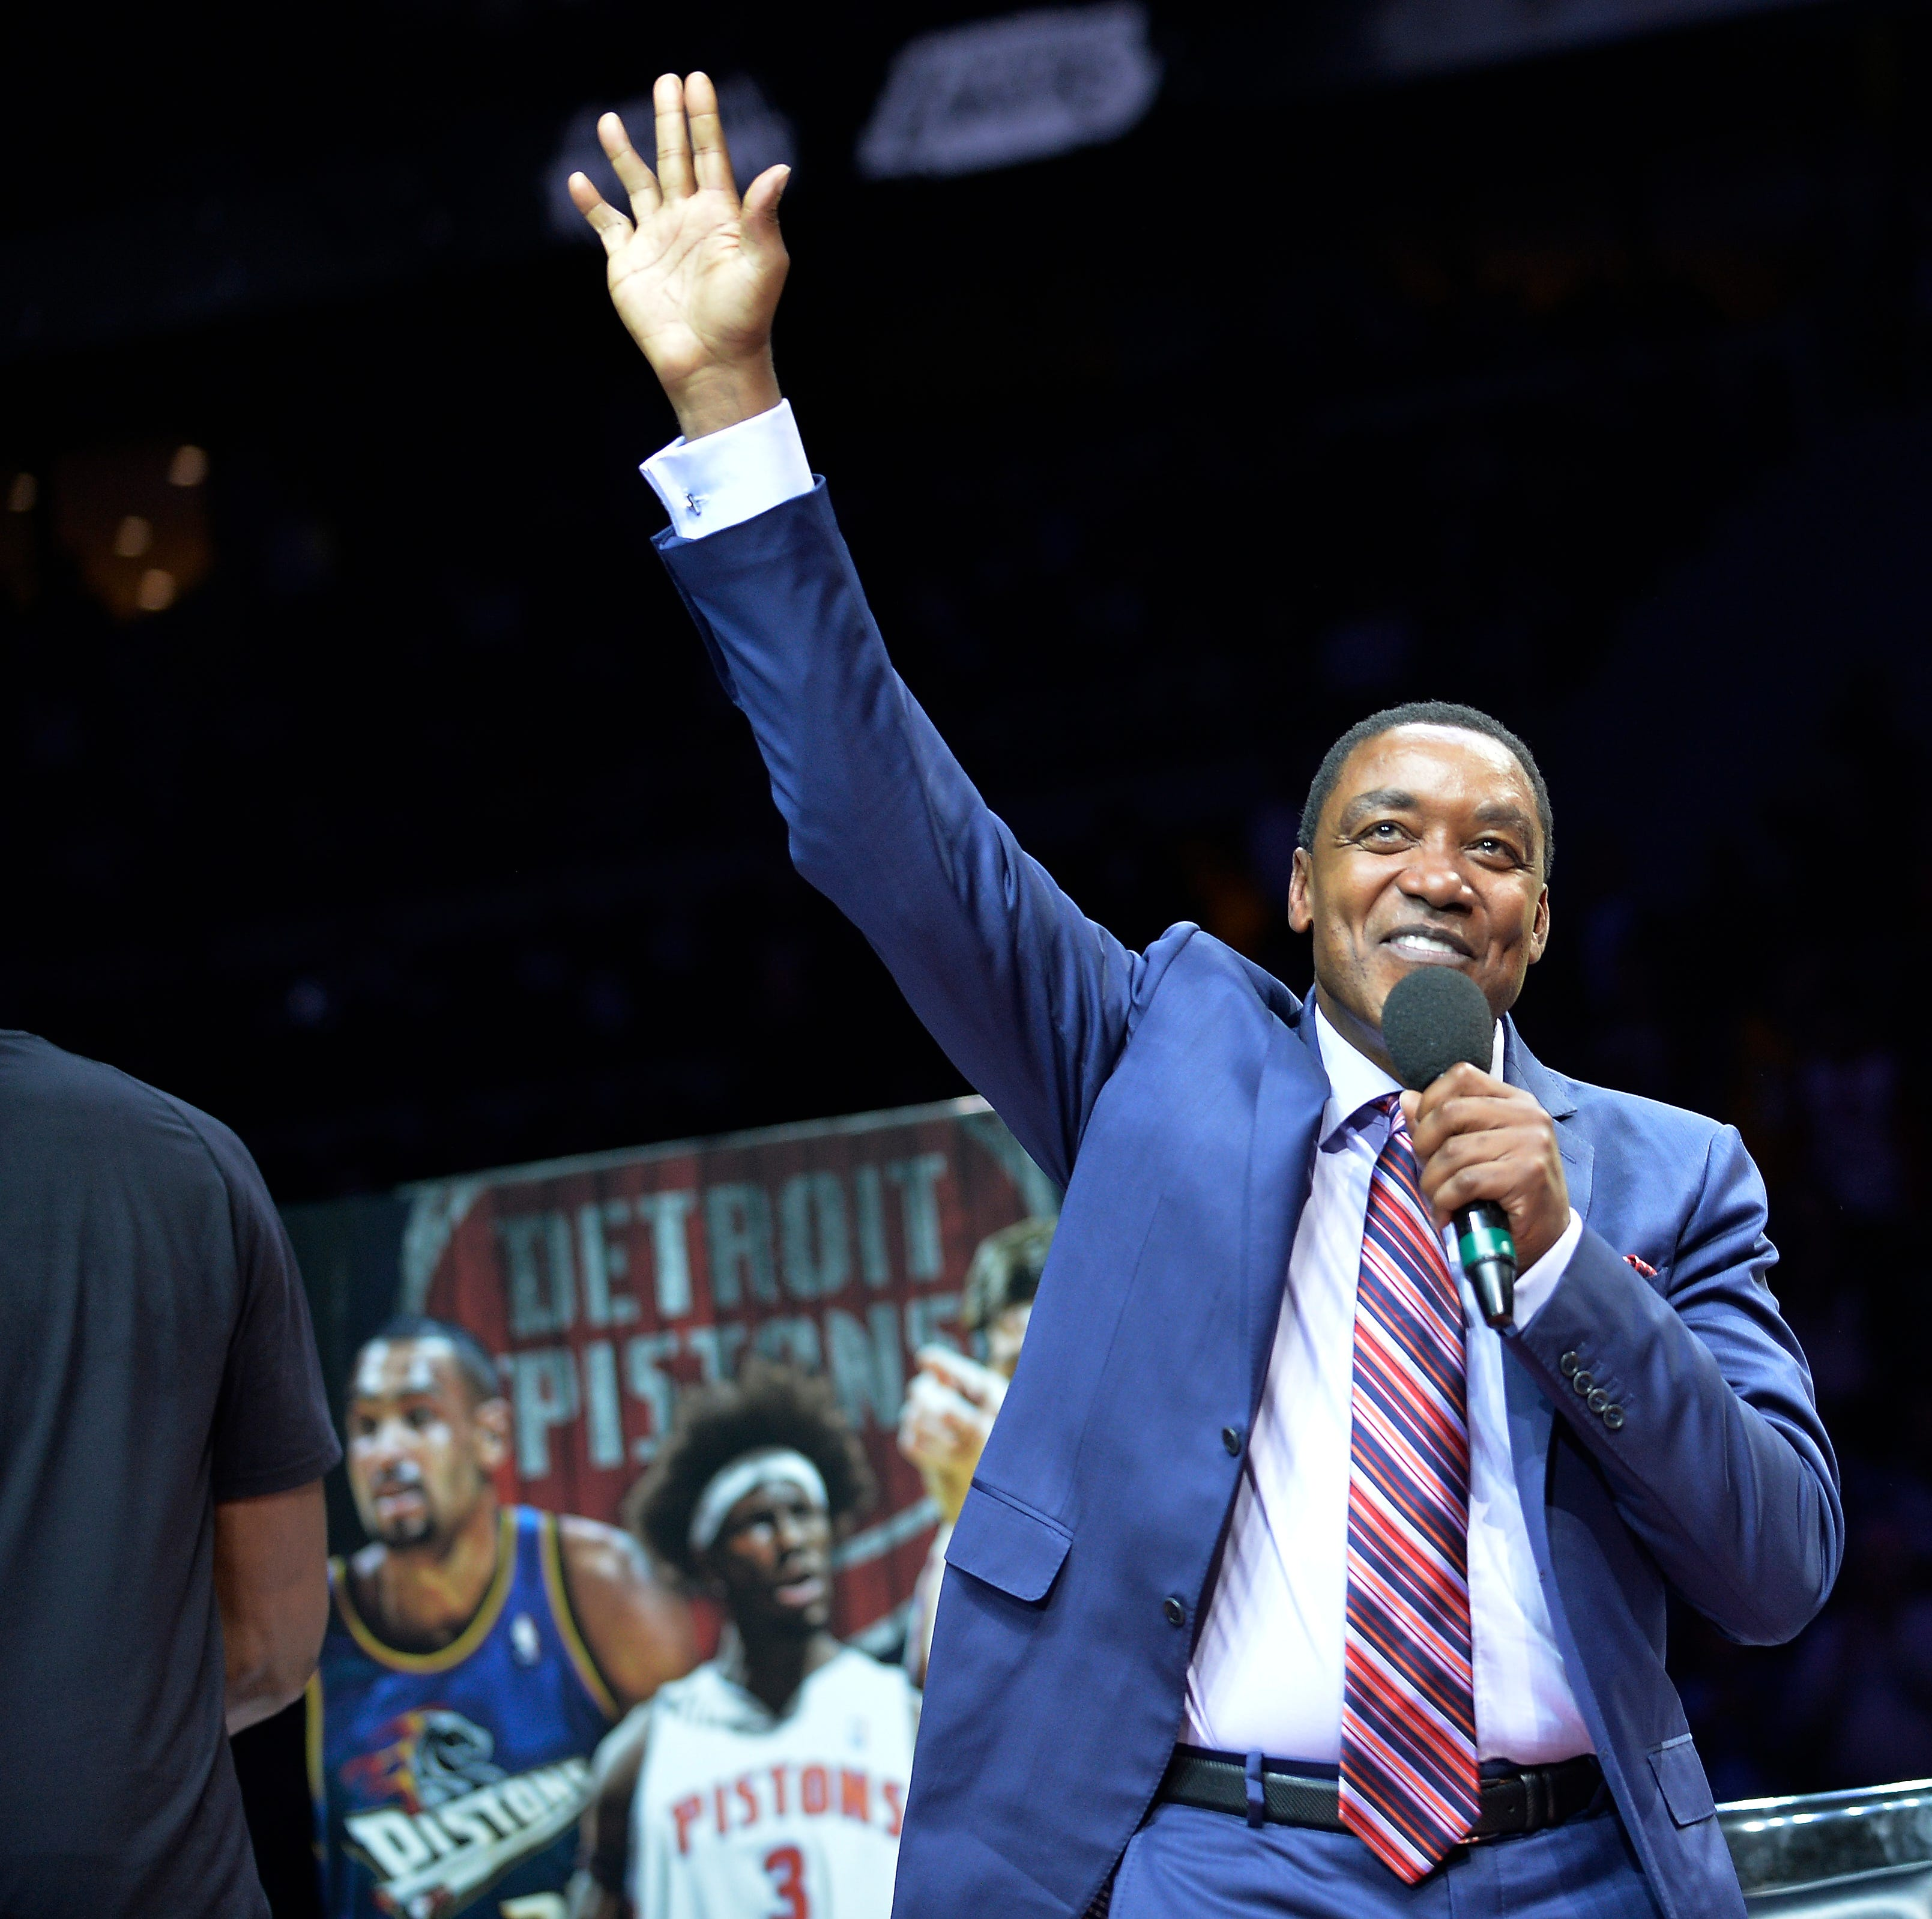 Isiah Thomas wants Pistons' 'Bad Boys' recognized among NBA all-time great teams